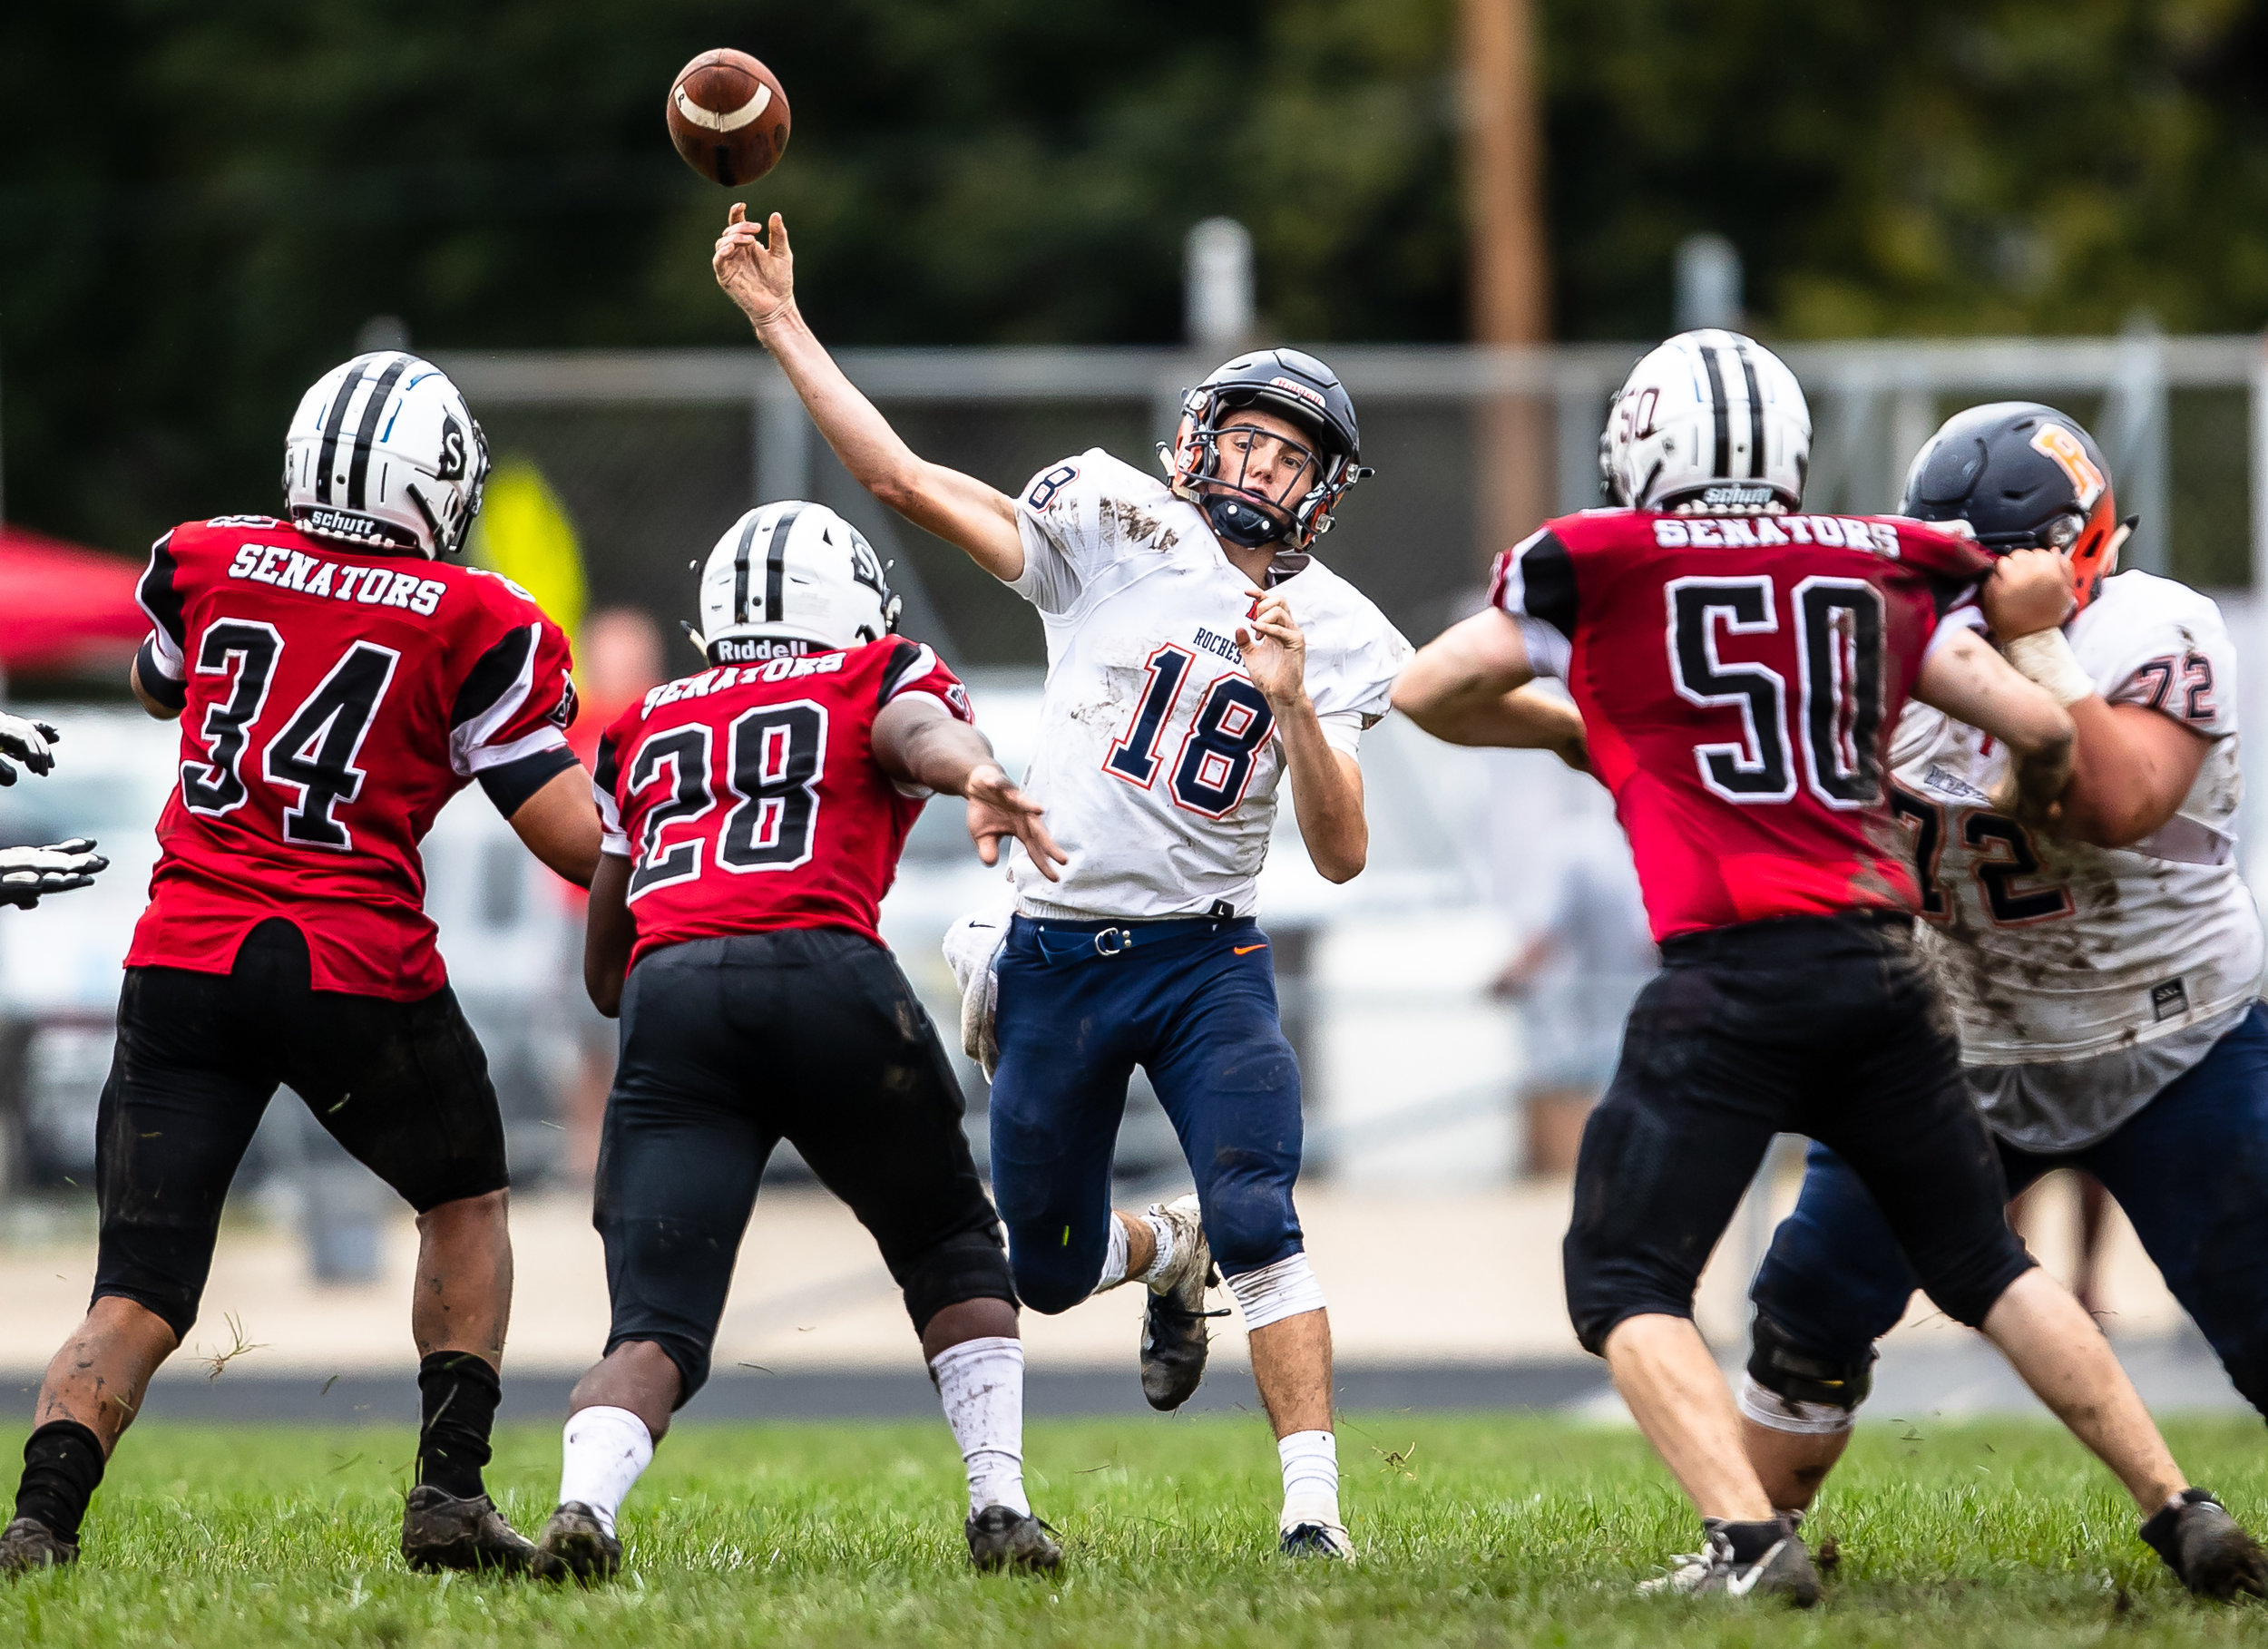 Rochester quarterback Clay Bruno (18) launches a pass against Springfield in the first half at Memorial Stadium, Saturday, Oct. 6, 2018, in Springfield, Ill. [Justin L. Fowler/The State Journal-Register]